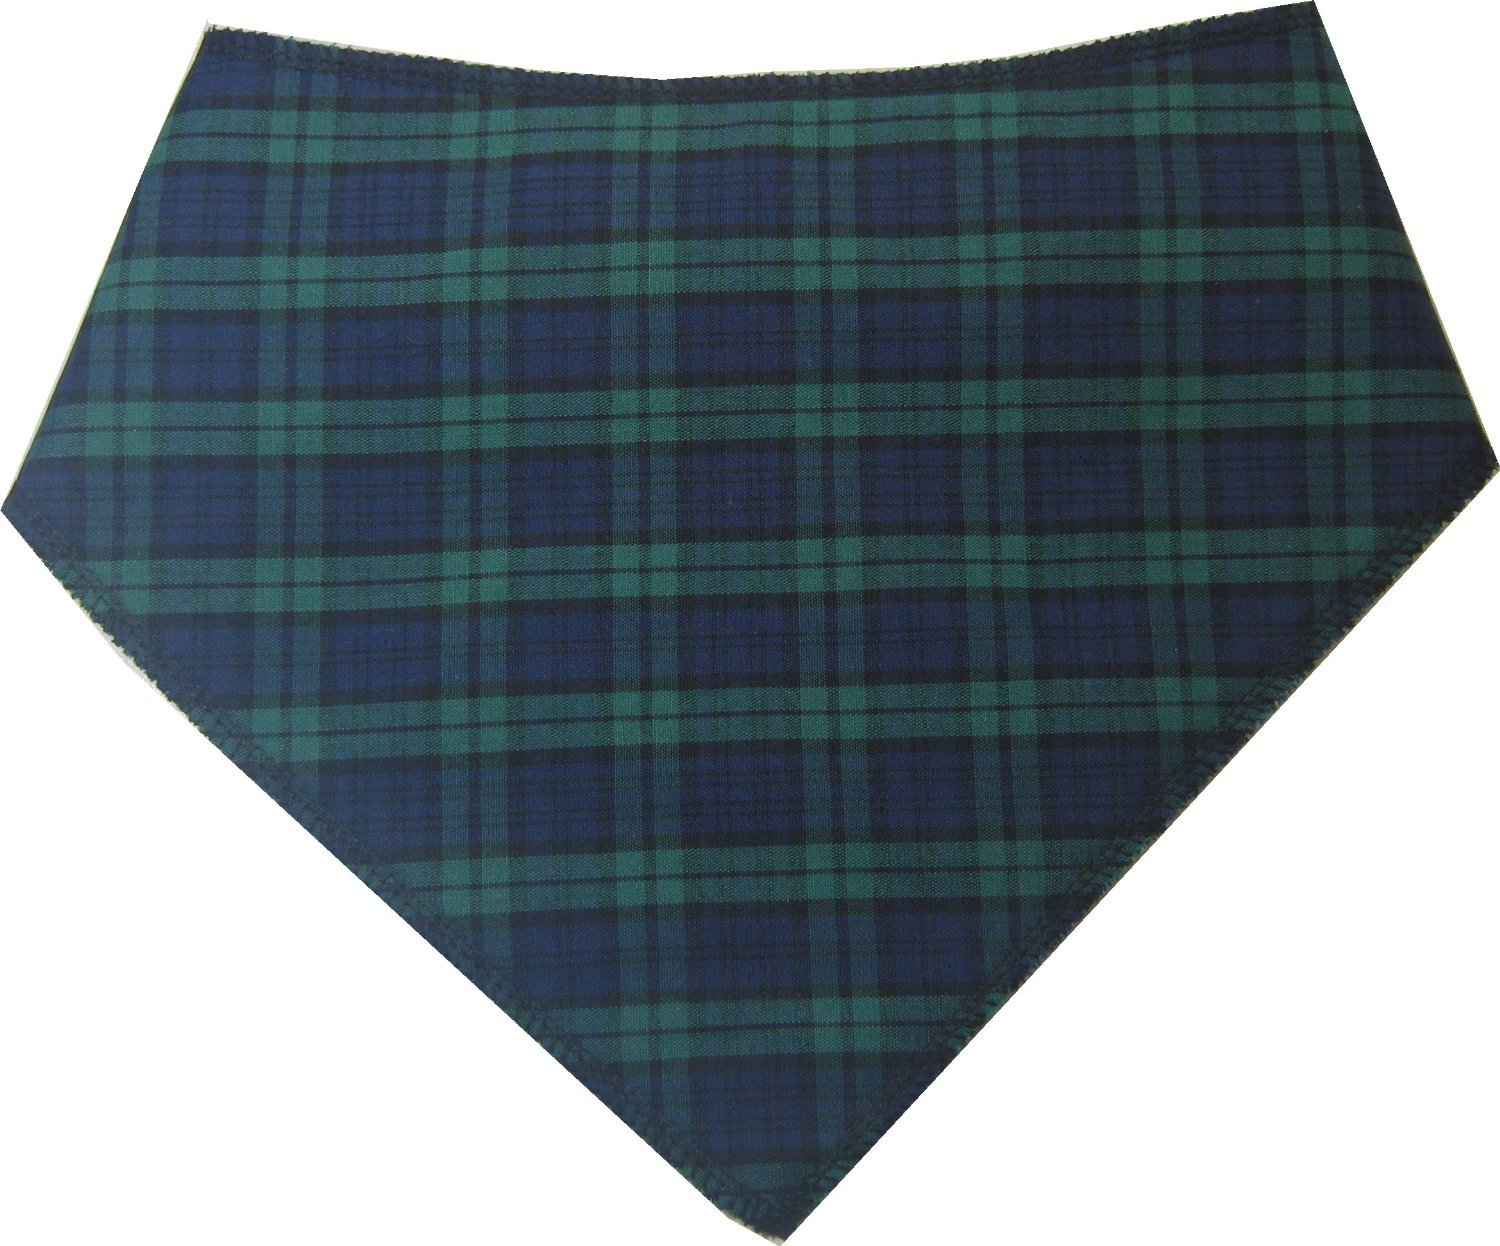 Spoilt Rotten Pets (S4) Blue Tartan Branded Dog Bandana. Black Watch Kilting – Extra Large Size Generally Fits Rottweilers and St Bernard Sized Dogs. Neck Size 23″ to 28″ Gorgeous Range of Patterns & Colours.